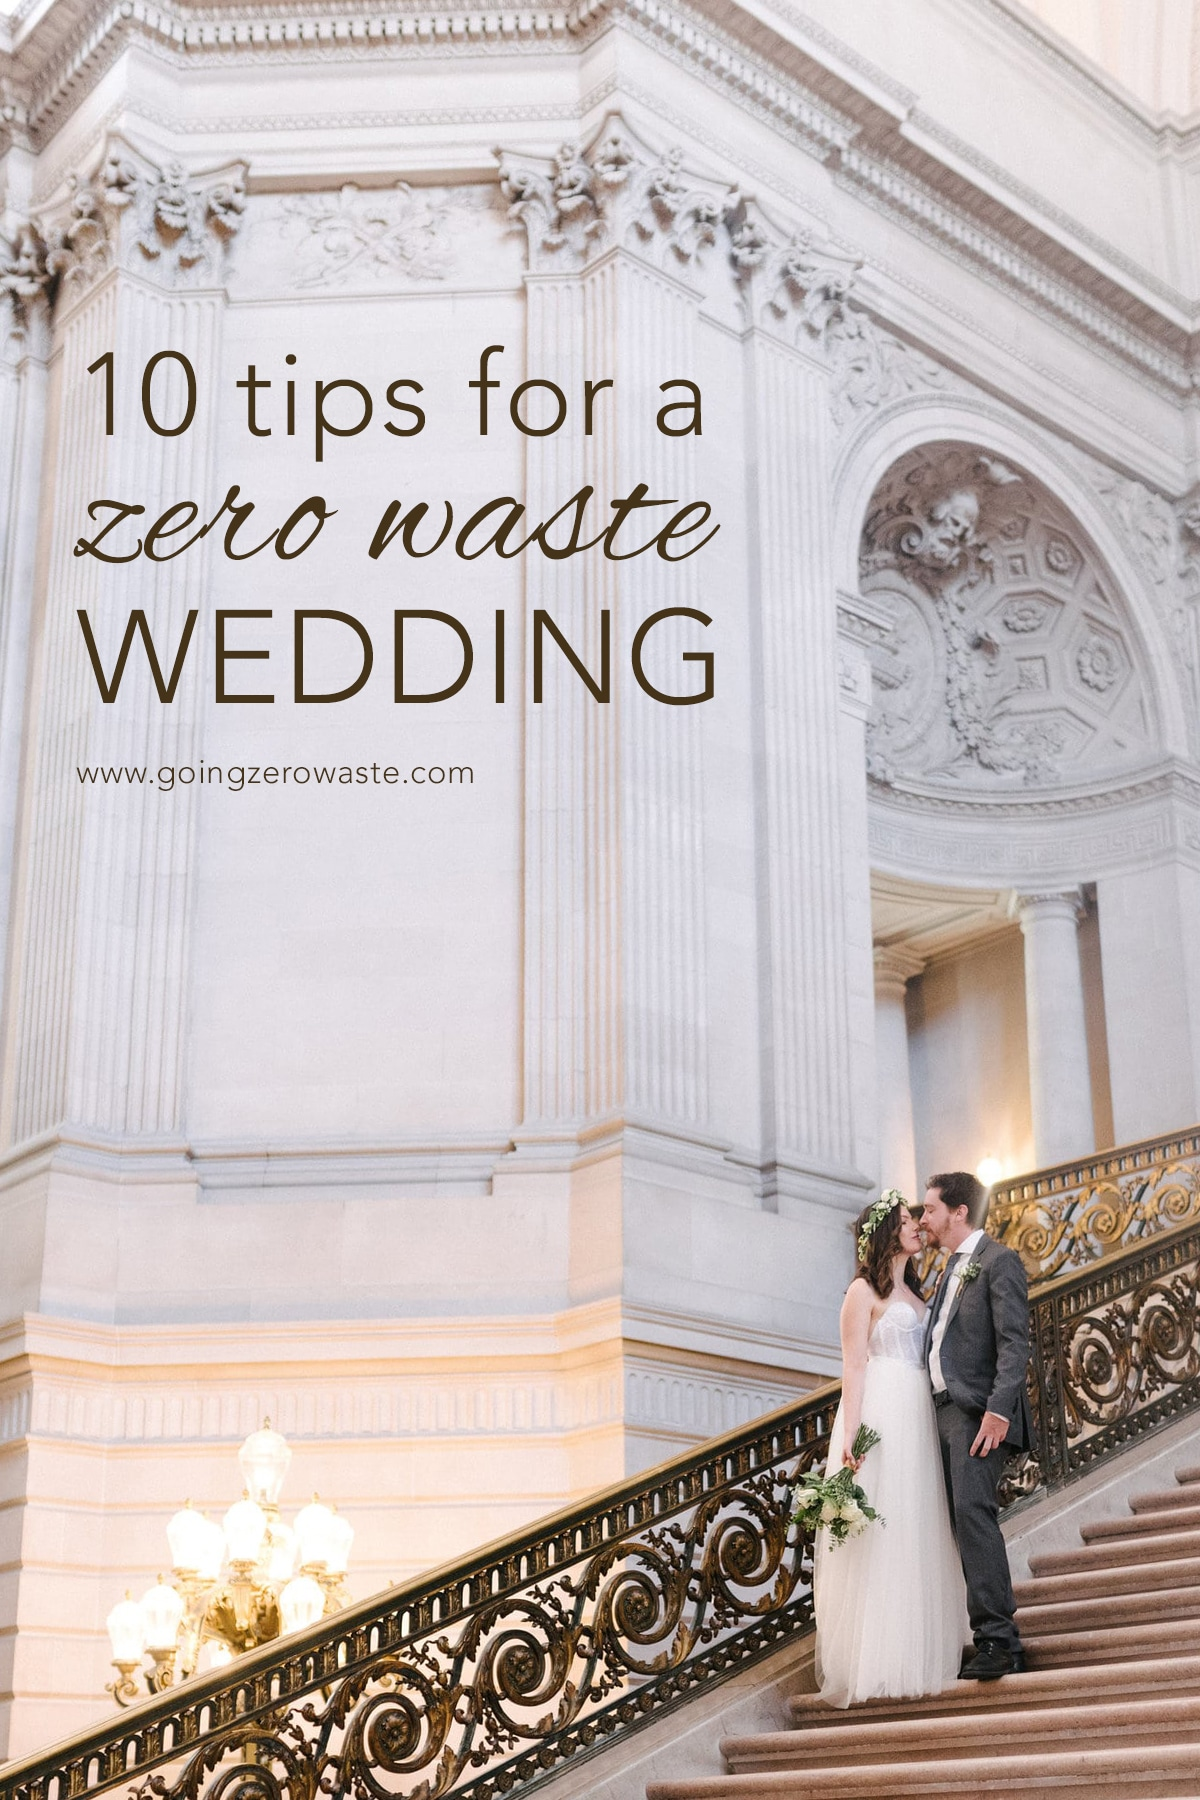 10 tips for a zero waste wedding from www.goingzerowaste.com #sustainablewedding #ecofriendlyweddings #zerowaste #goingzerowaste #weddings #cityhallwedding #greenweddings